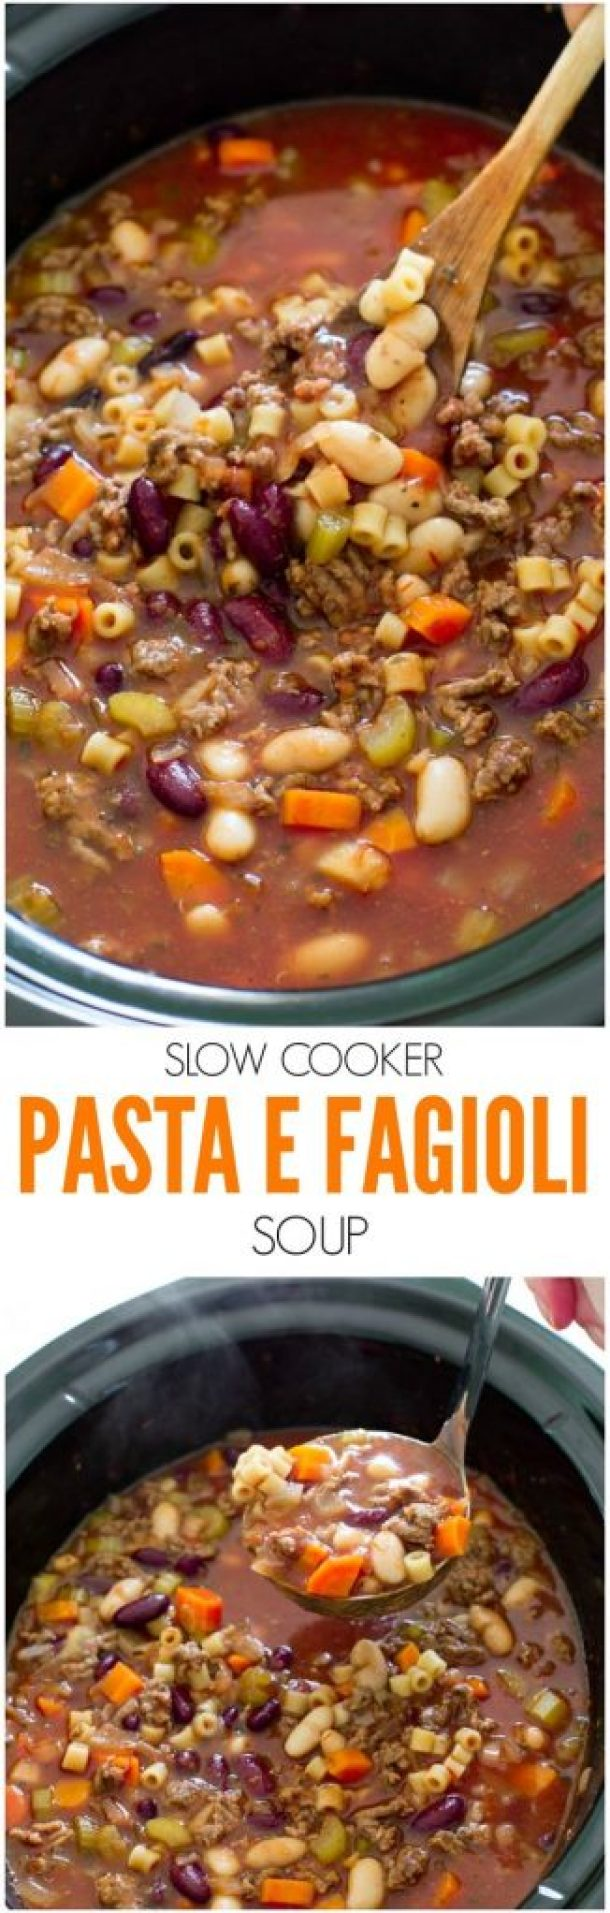 Slow Cooker Pasta e Fagioli Soup Recipe | The Recipe Critic